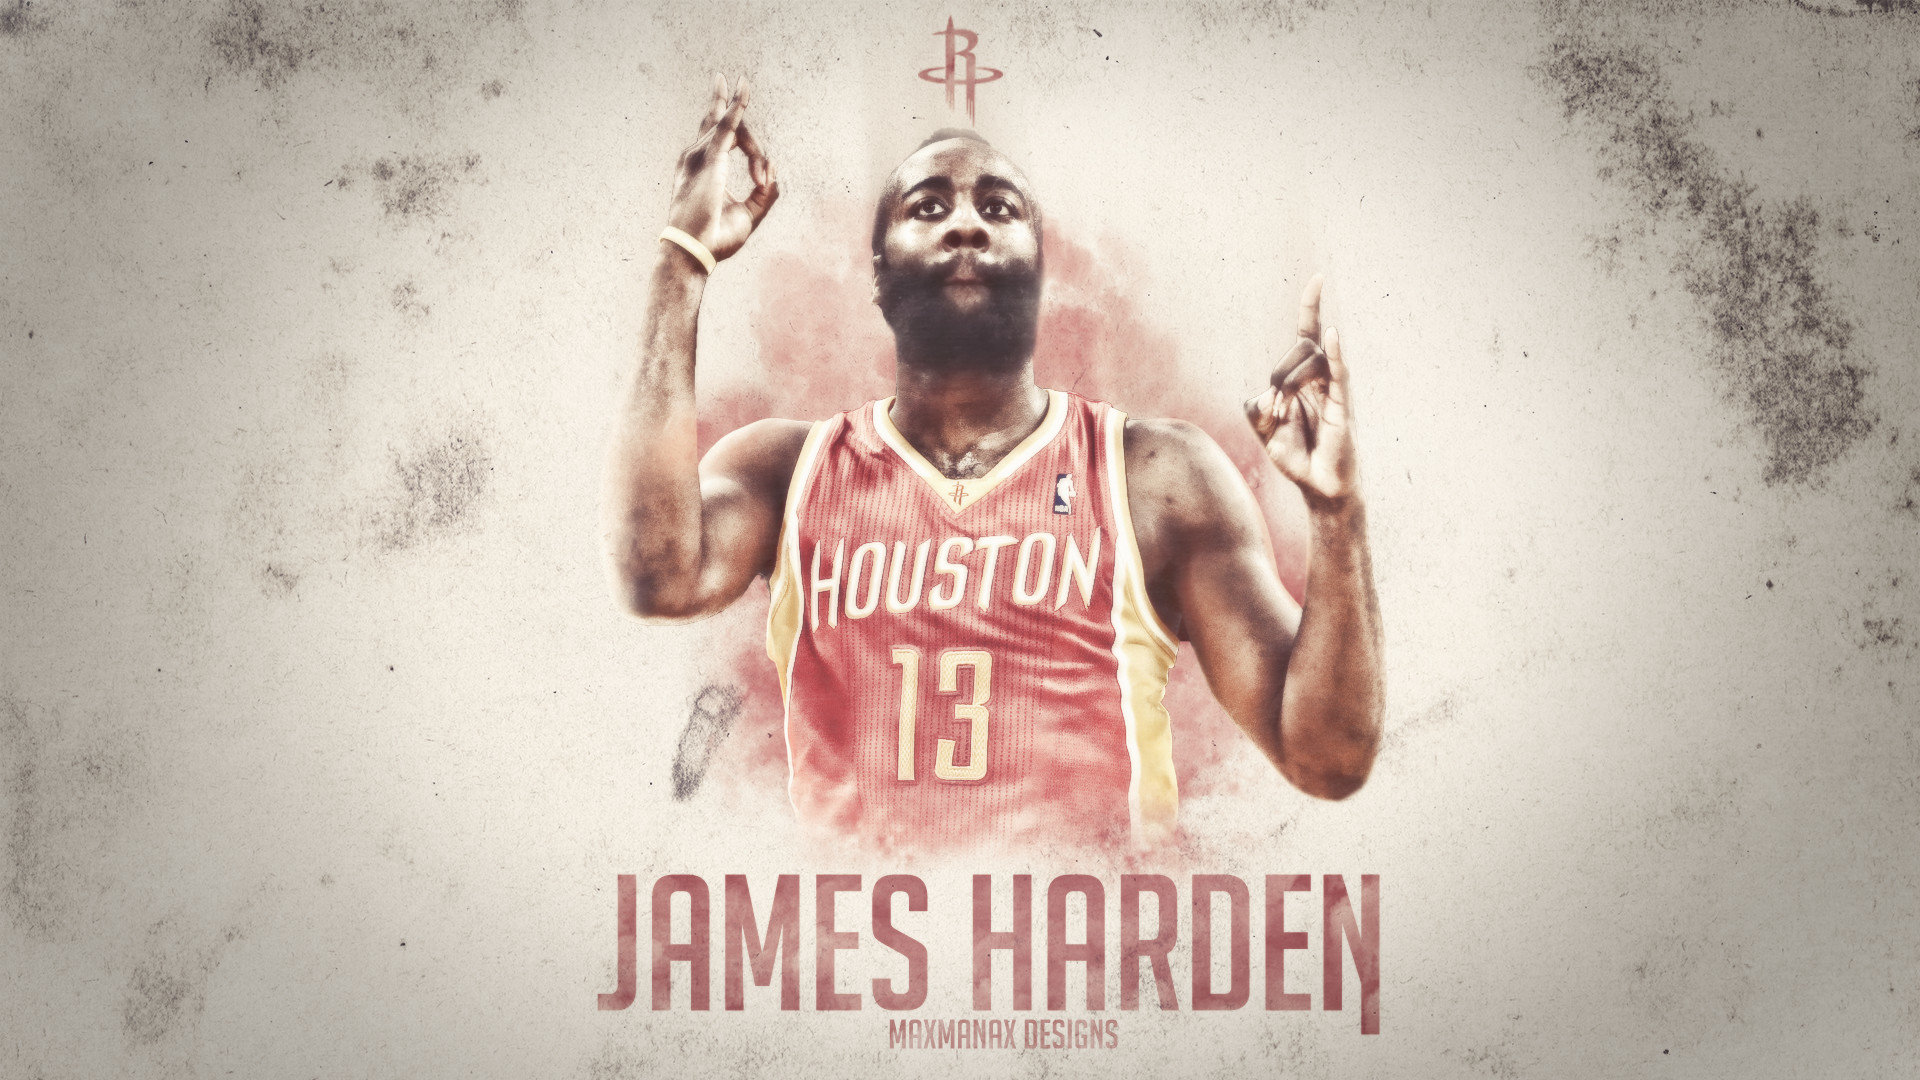 Download full hd 1920x1080 James Harden PC background ID:281675 for free